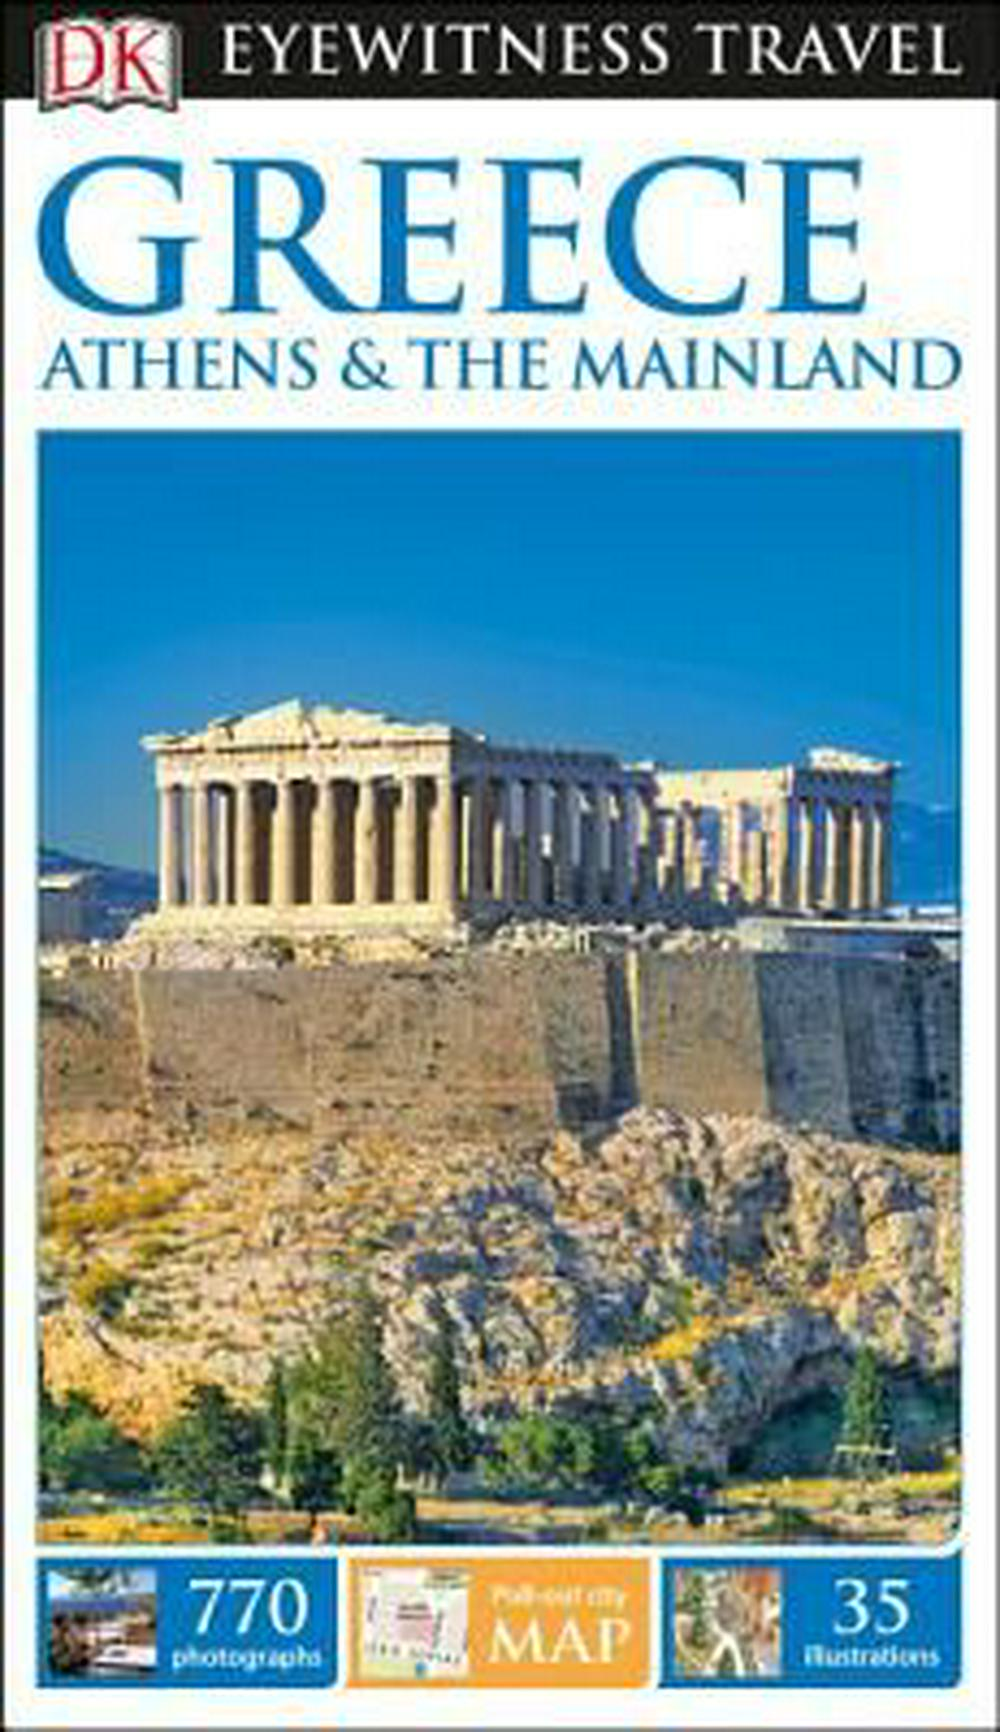 DK Eyewitness Travel Guide Greece, Athens & the MainlandEyewitness Travel Guide